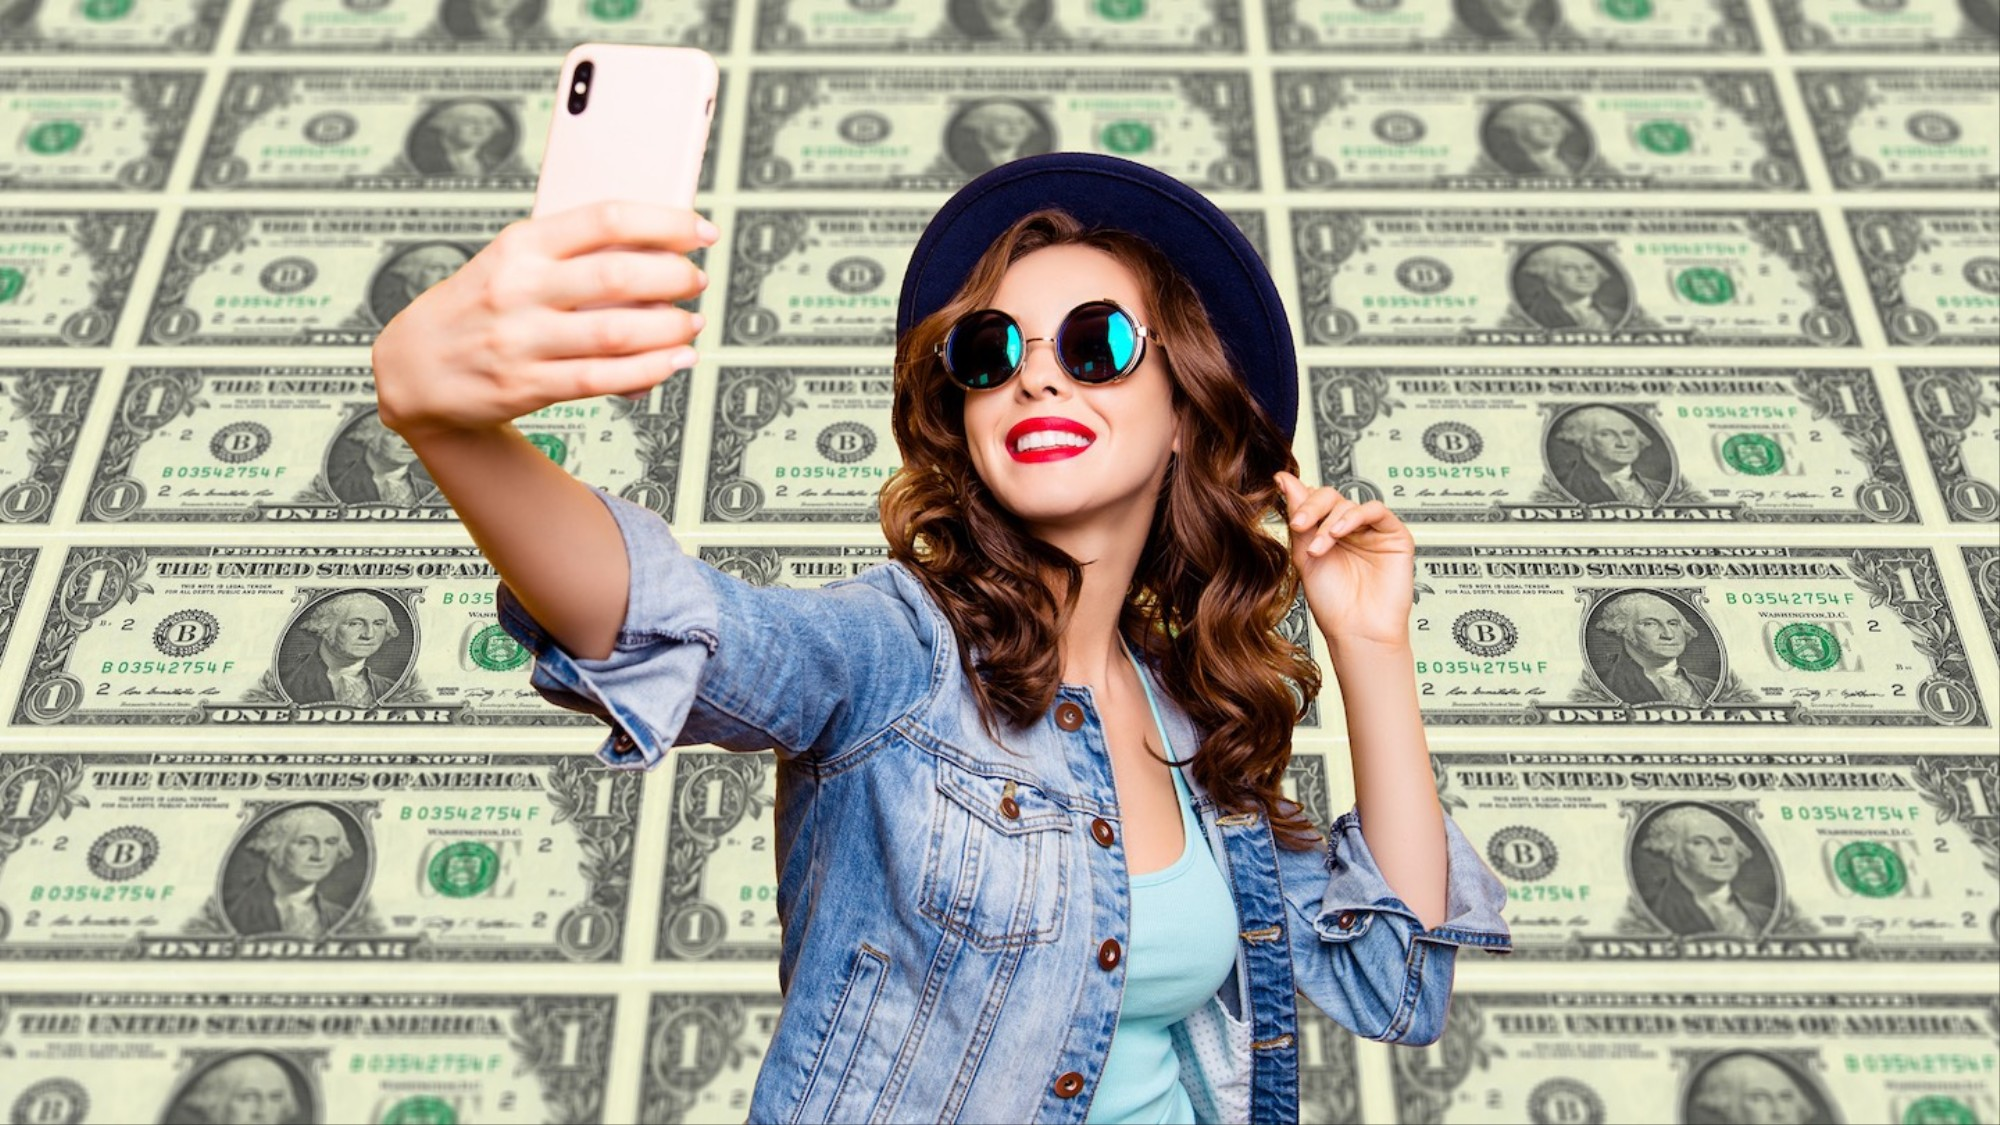 Instagrammers Are Getting Scammed by a Mysterious 'Con Queen' - VICE